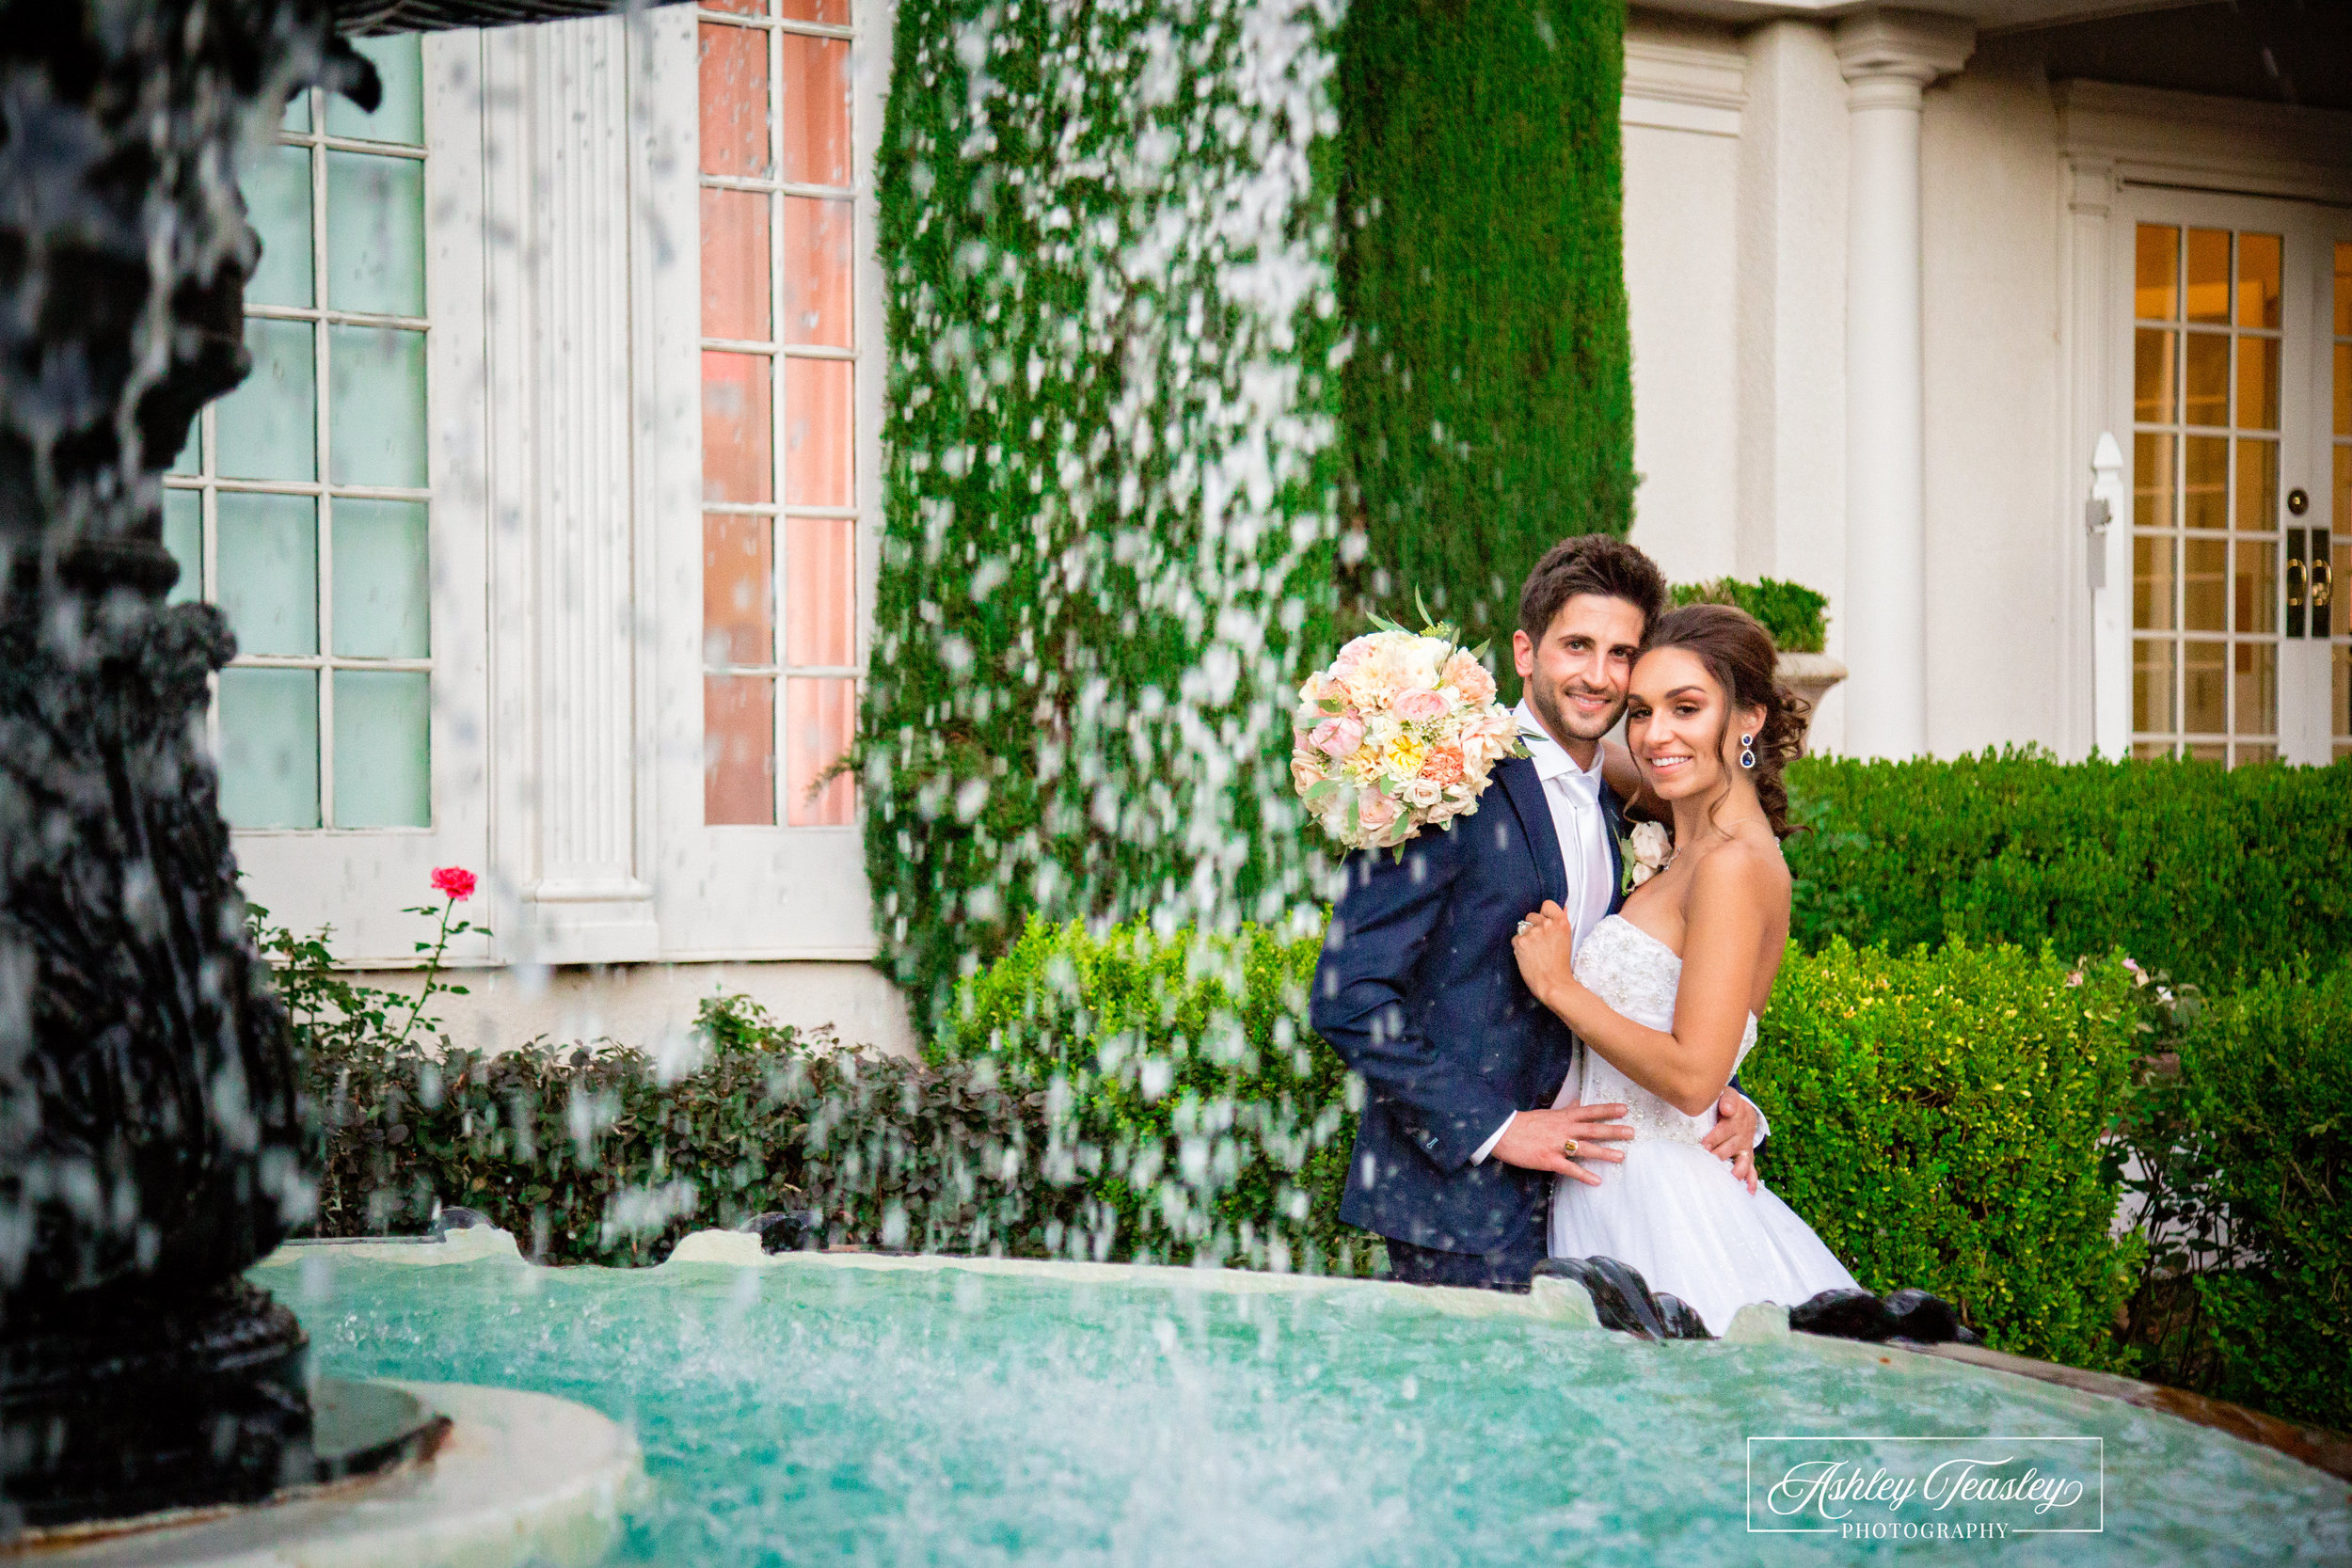 Vizcaya - Kaylie & Trevor - Sacramento Wedding Photographer - Ashley Teasley Photography-.jpg